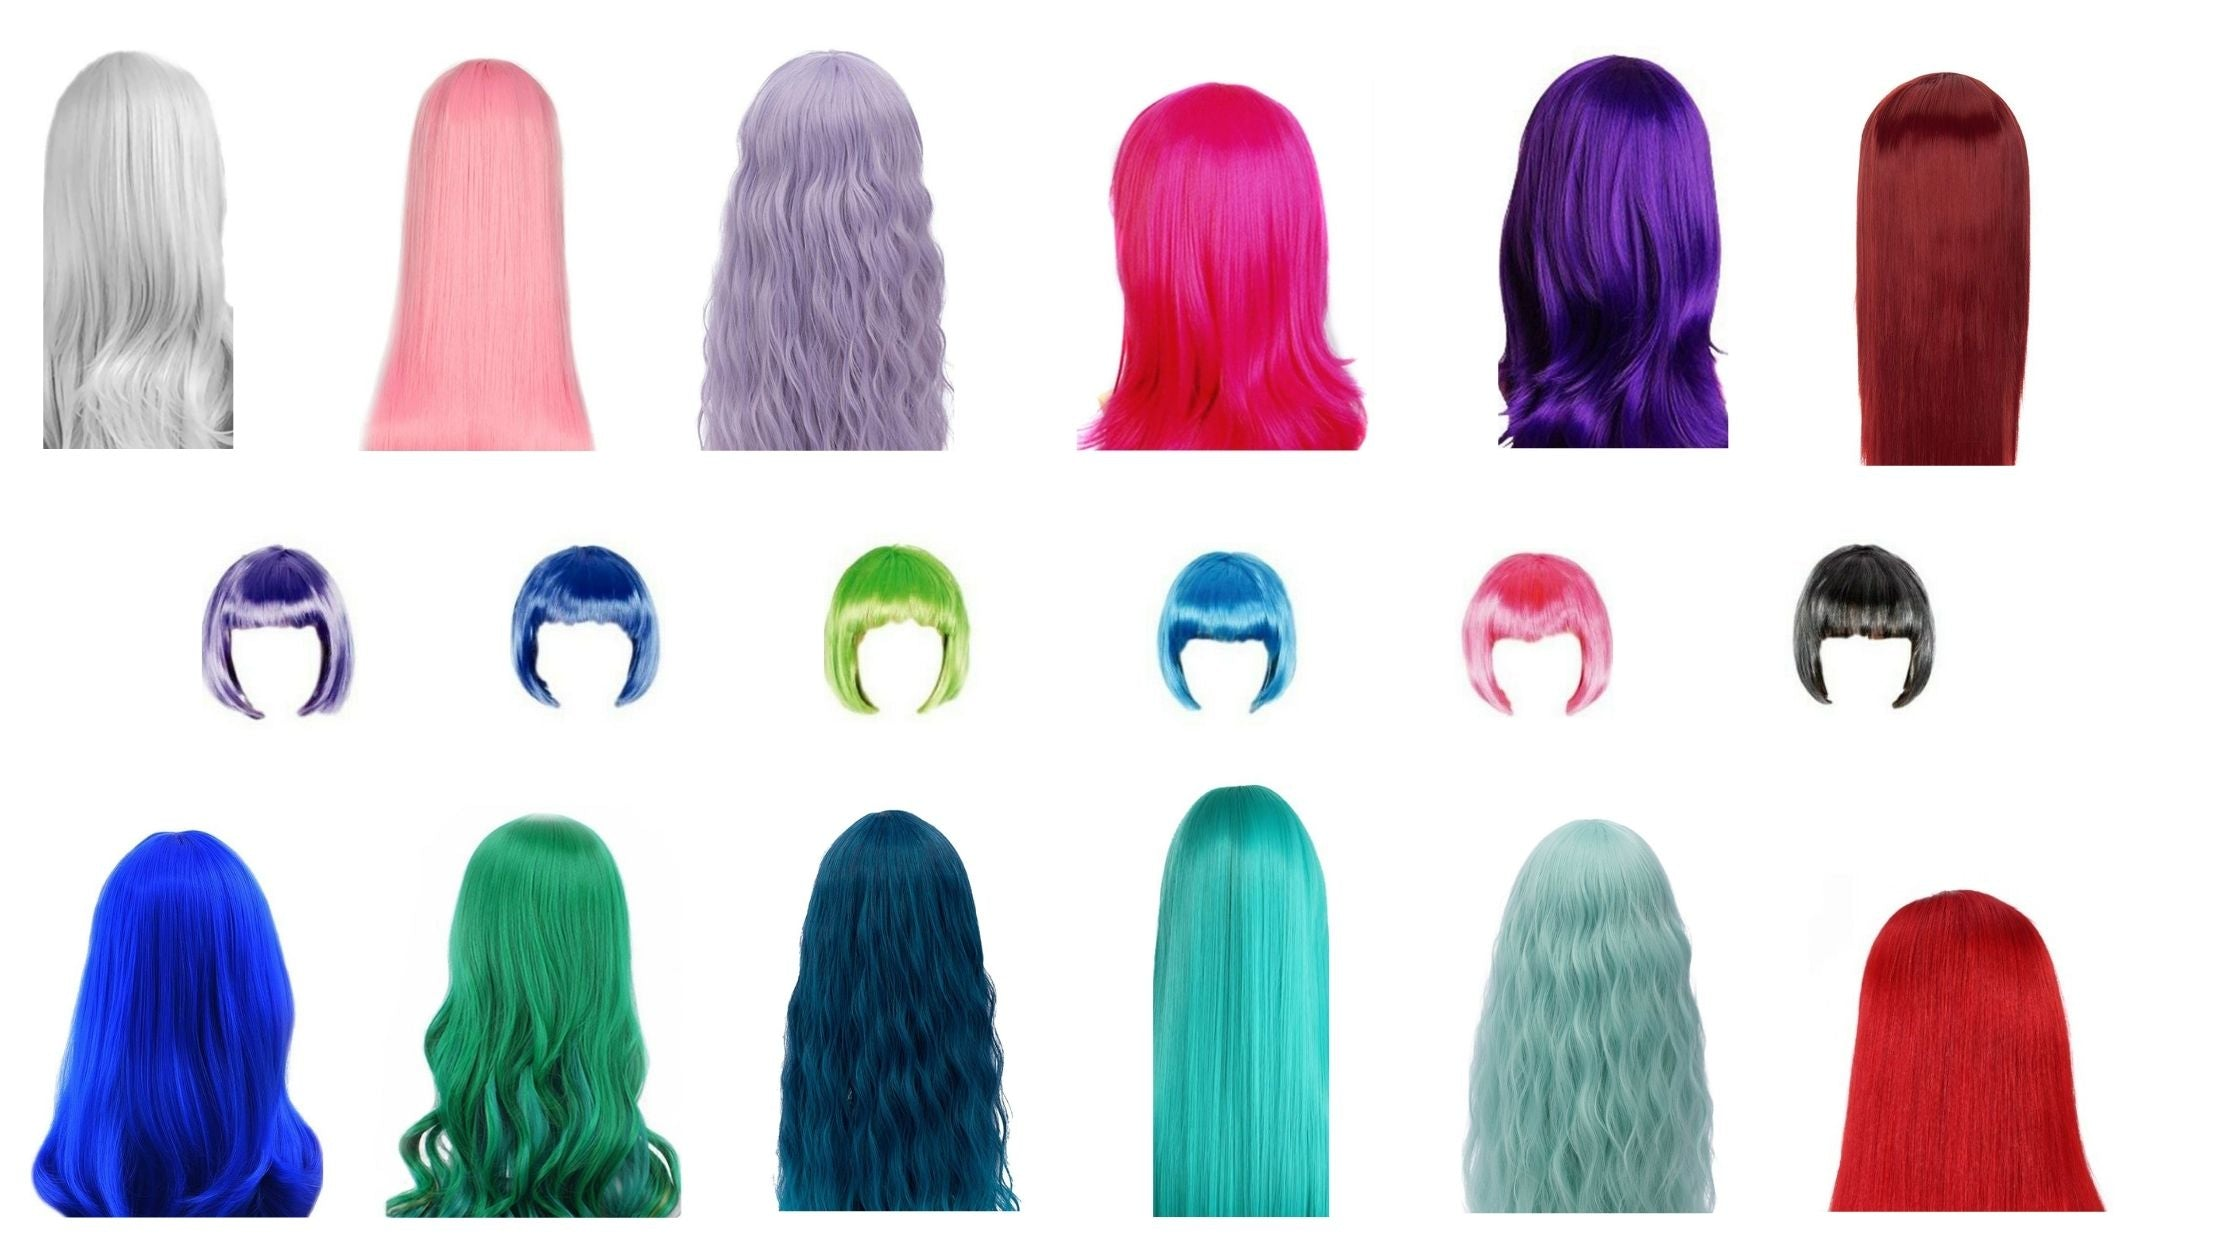 display of long short curly straight colorful and fun party wigs at wig ave austin tx